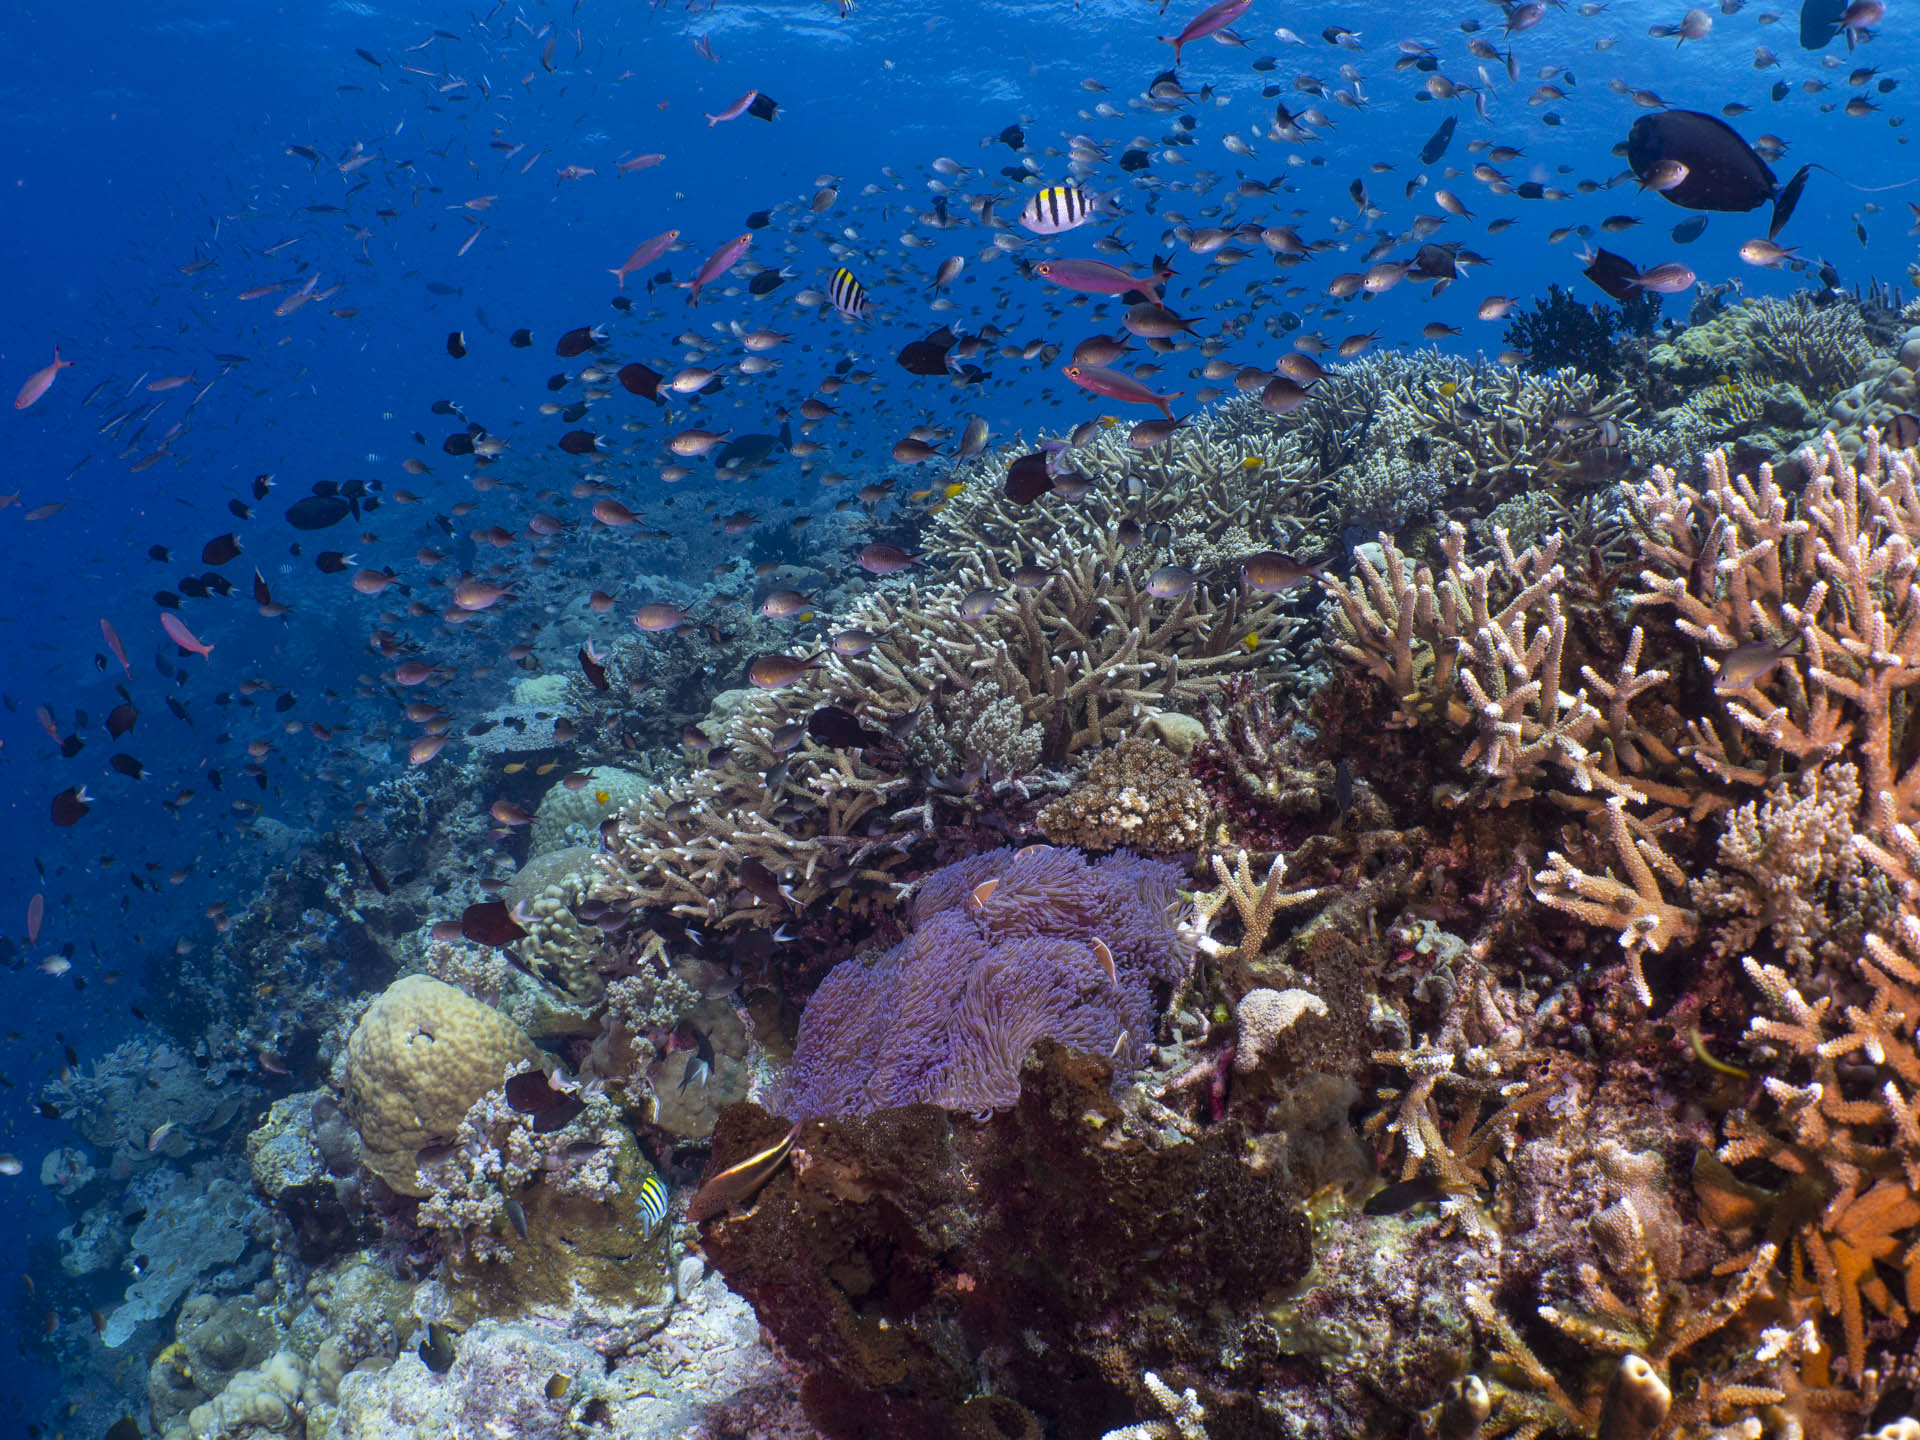 hard coral reef scene with lots of fish